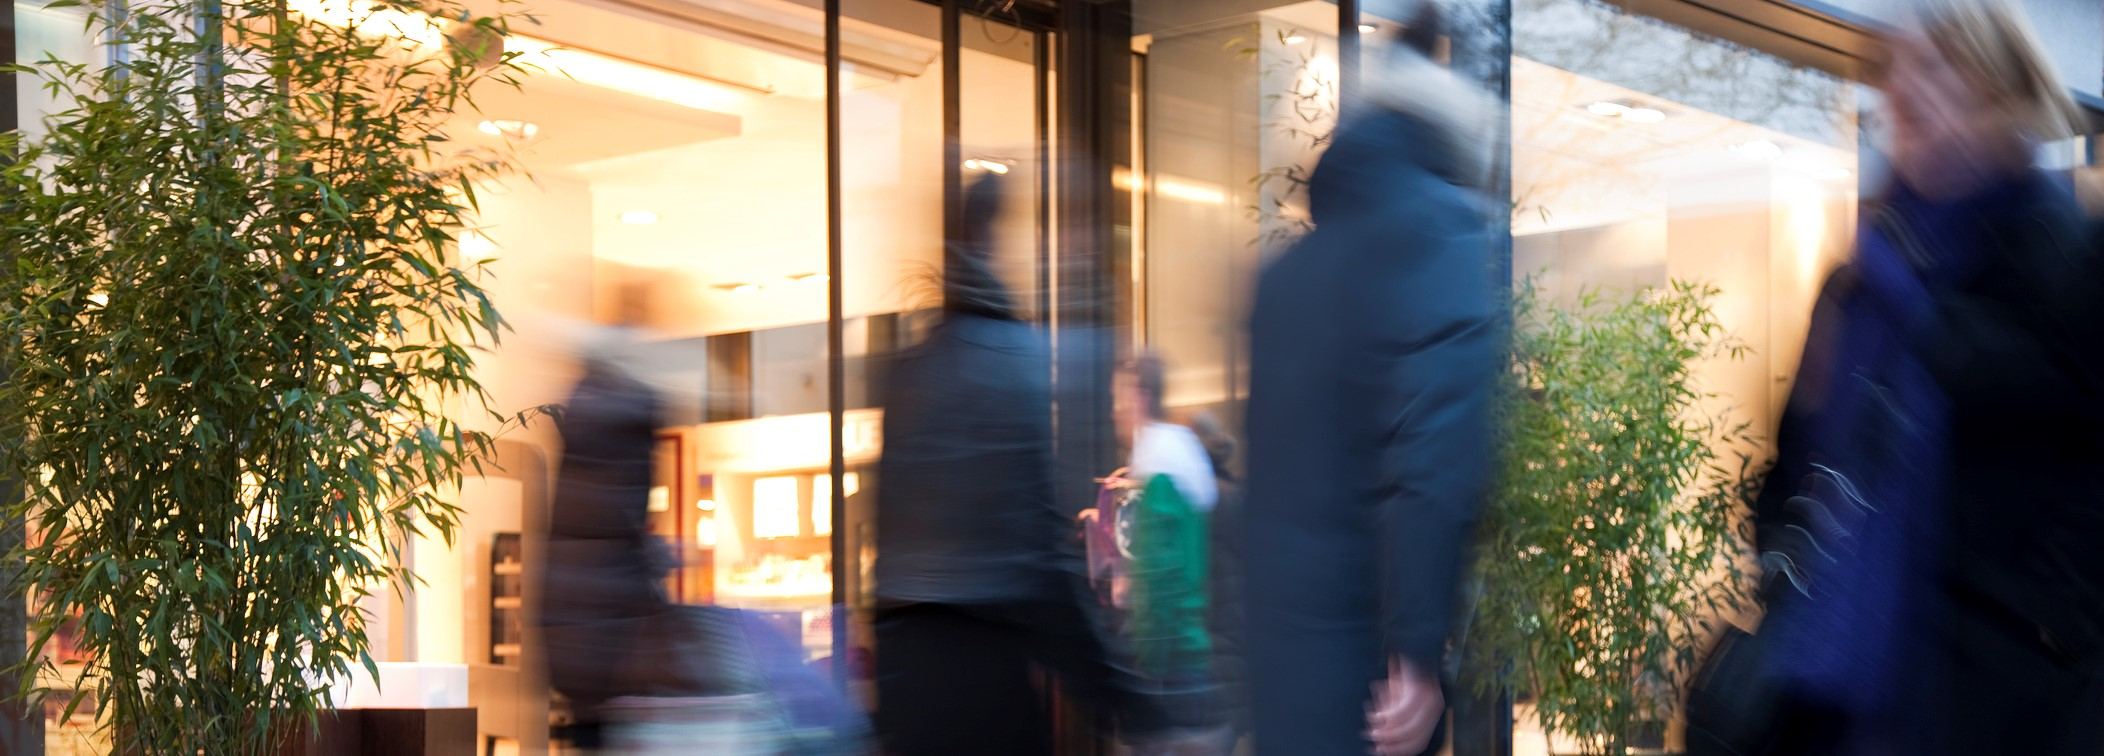 Business Tenancies: Whether a tenant could rely on retail closure during pandemic in arrears proceedings (Commerz Real Investmentgesellschaft mbH v TFS Stores Ltd - 2021)